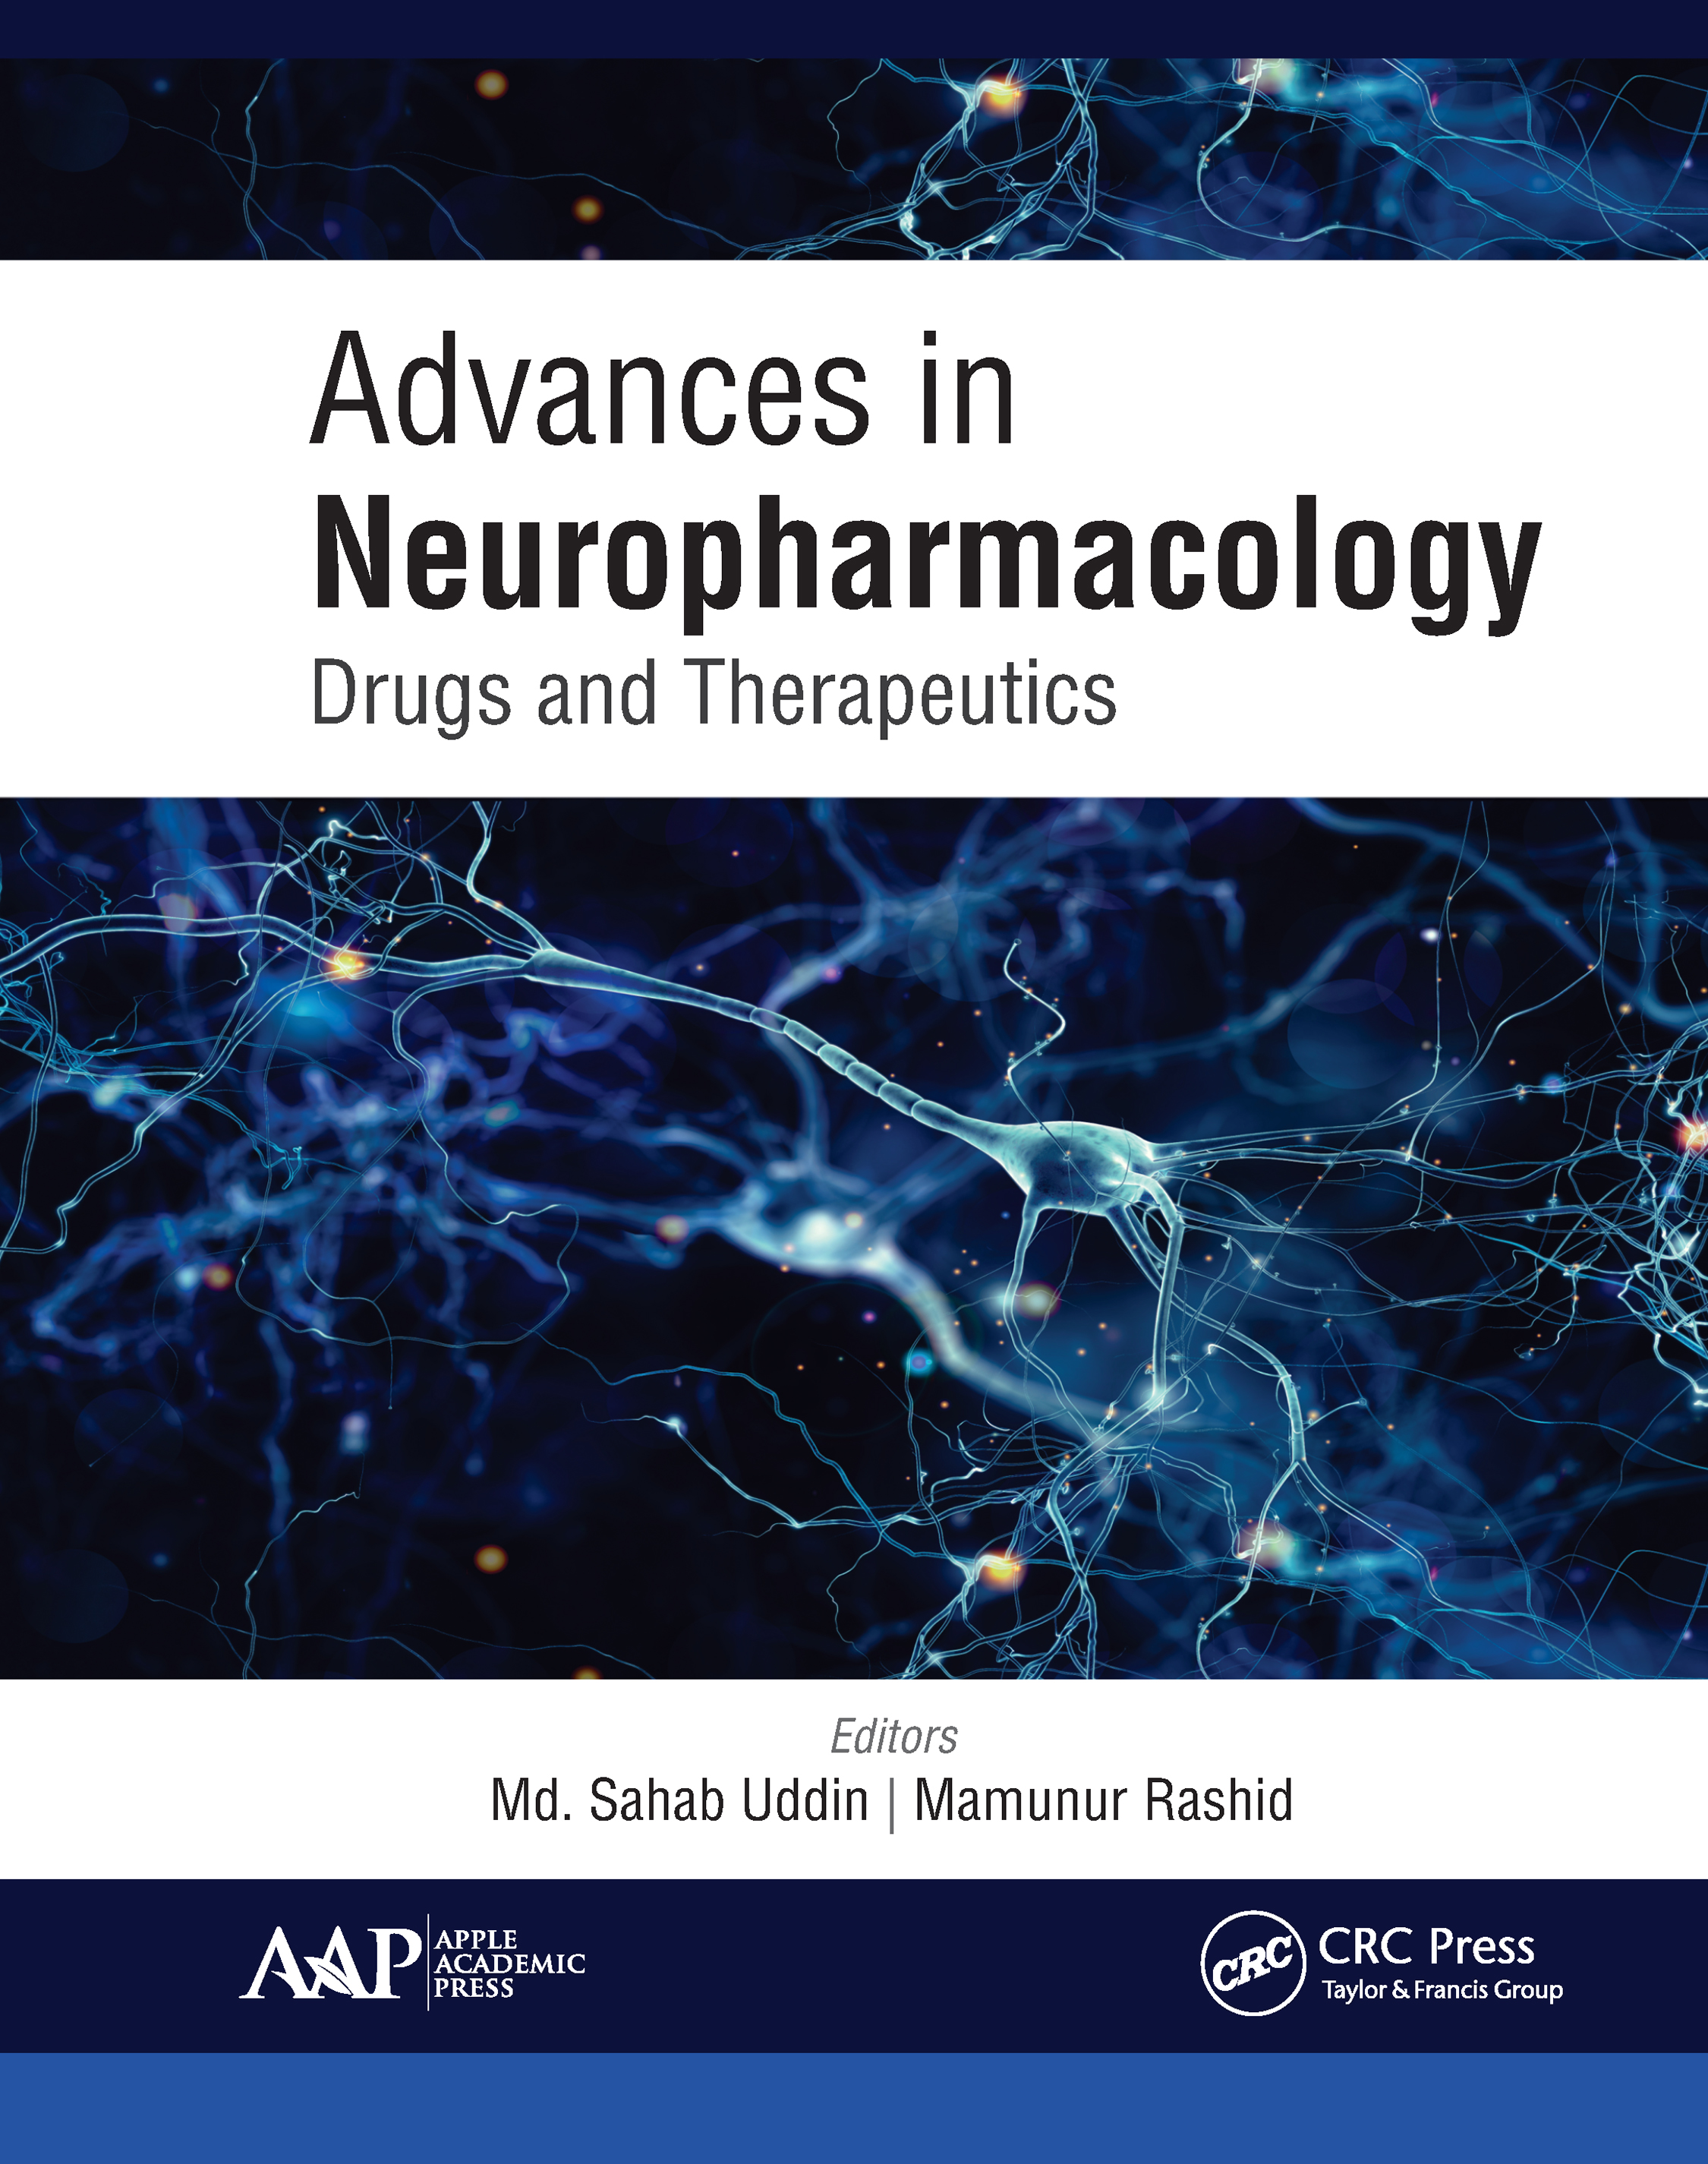 Advances in Neuropharmacology: Drugs and Therapeutics book cover